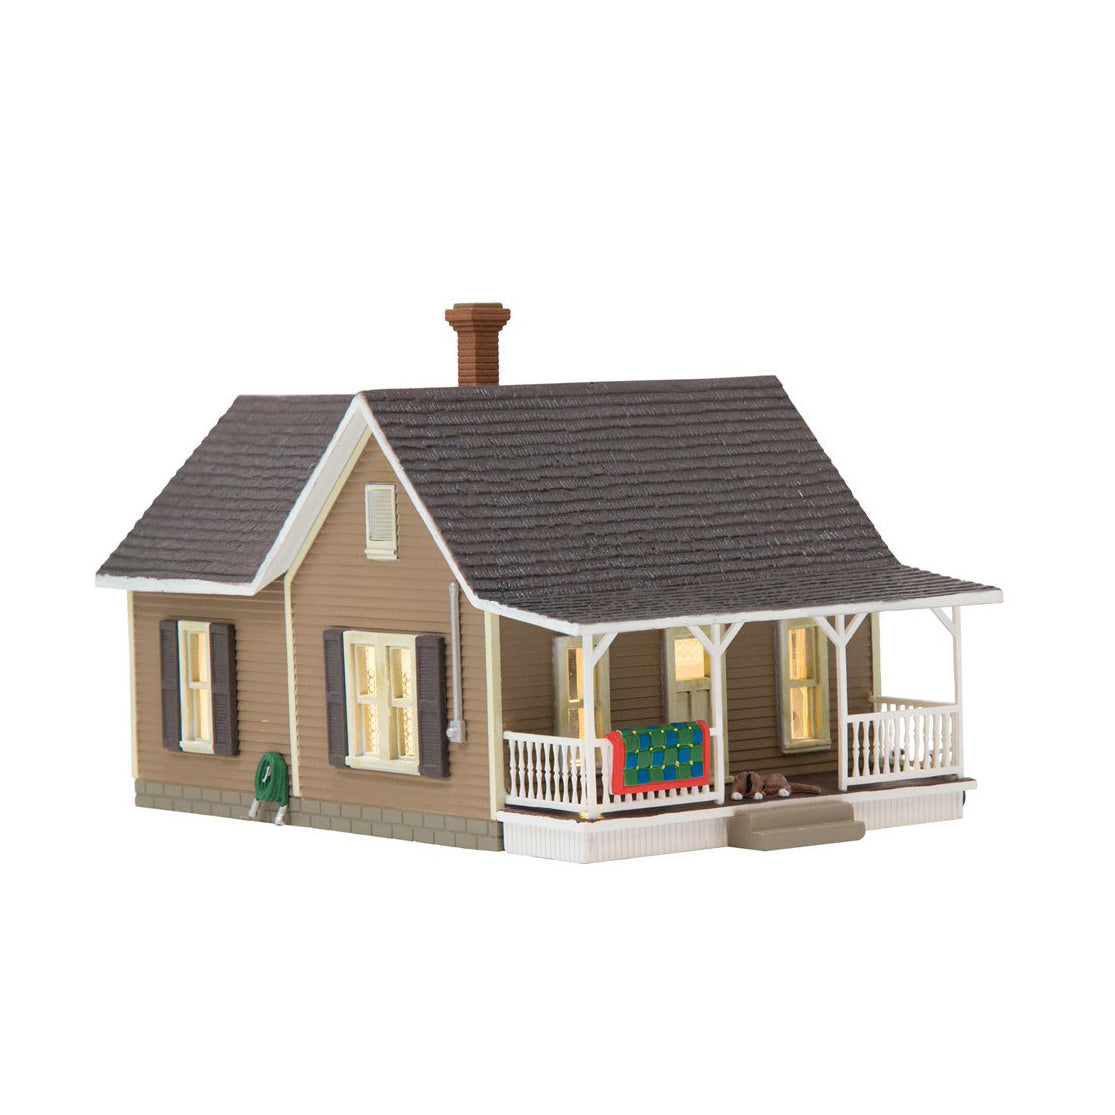 N Scale: Granny's House